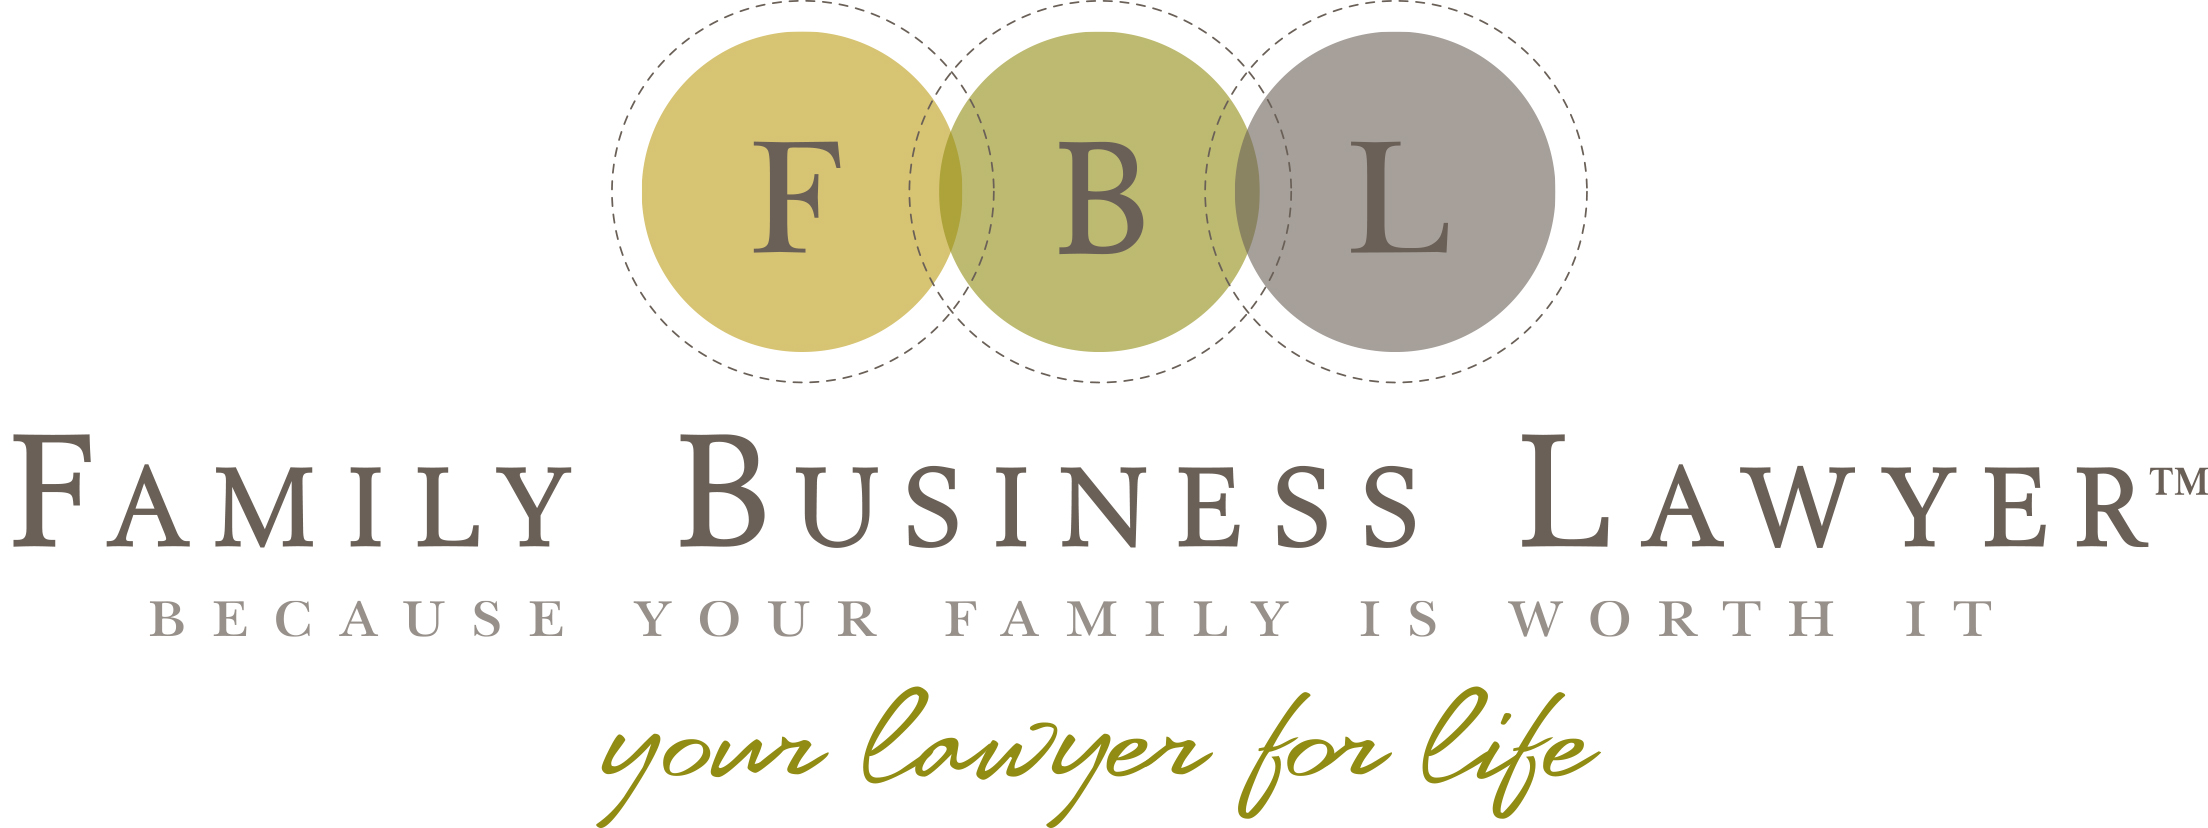 Family Business Lawyer